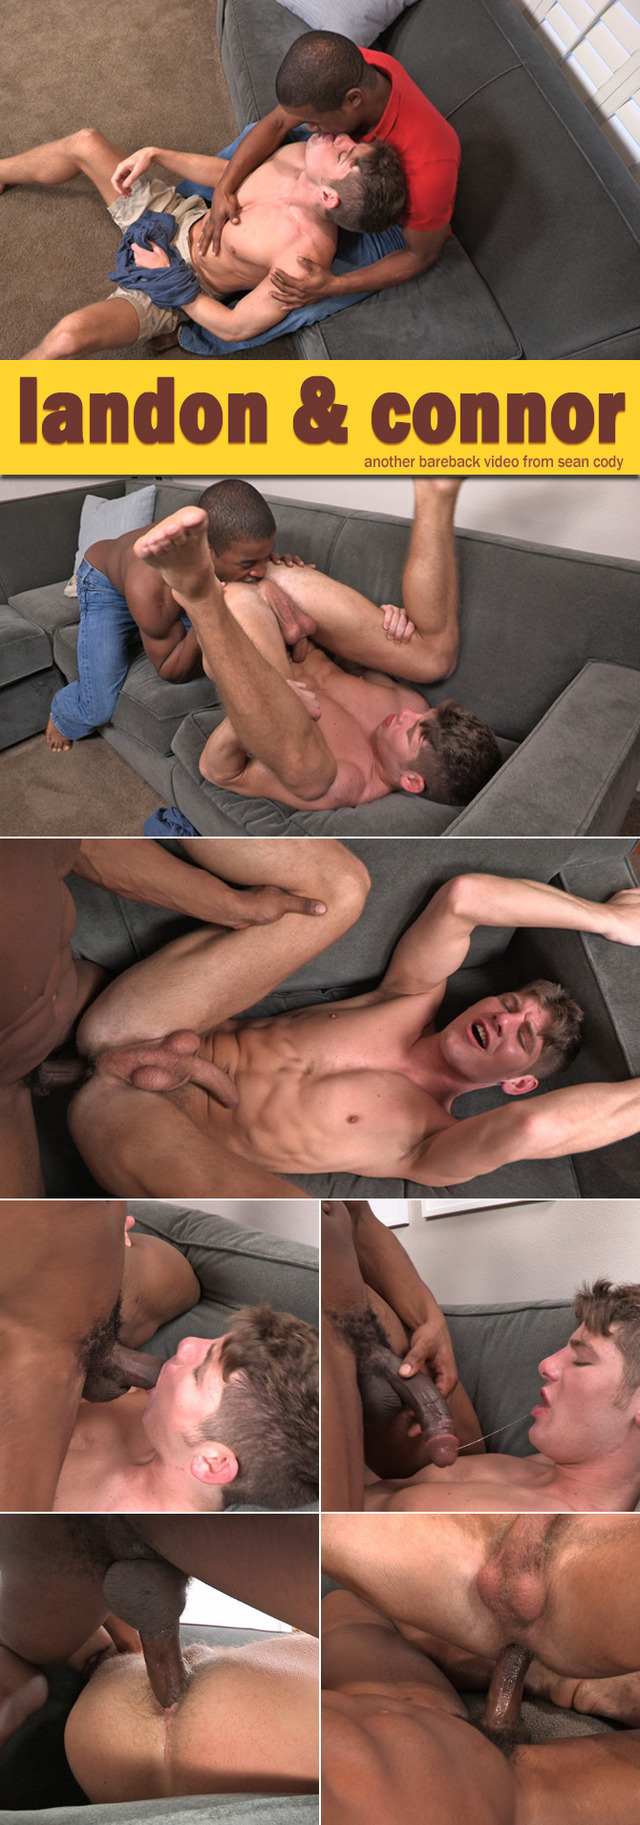 bare back sex gay black white gay cody bareback sean landon collages seancody connor